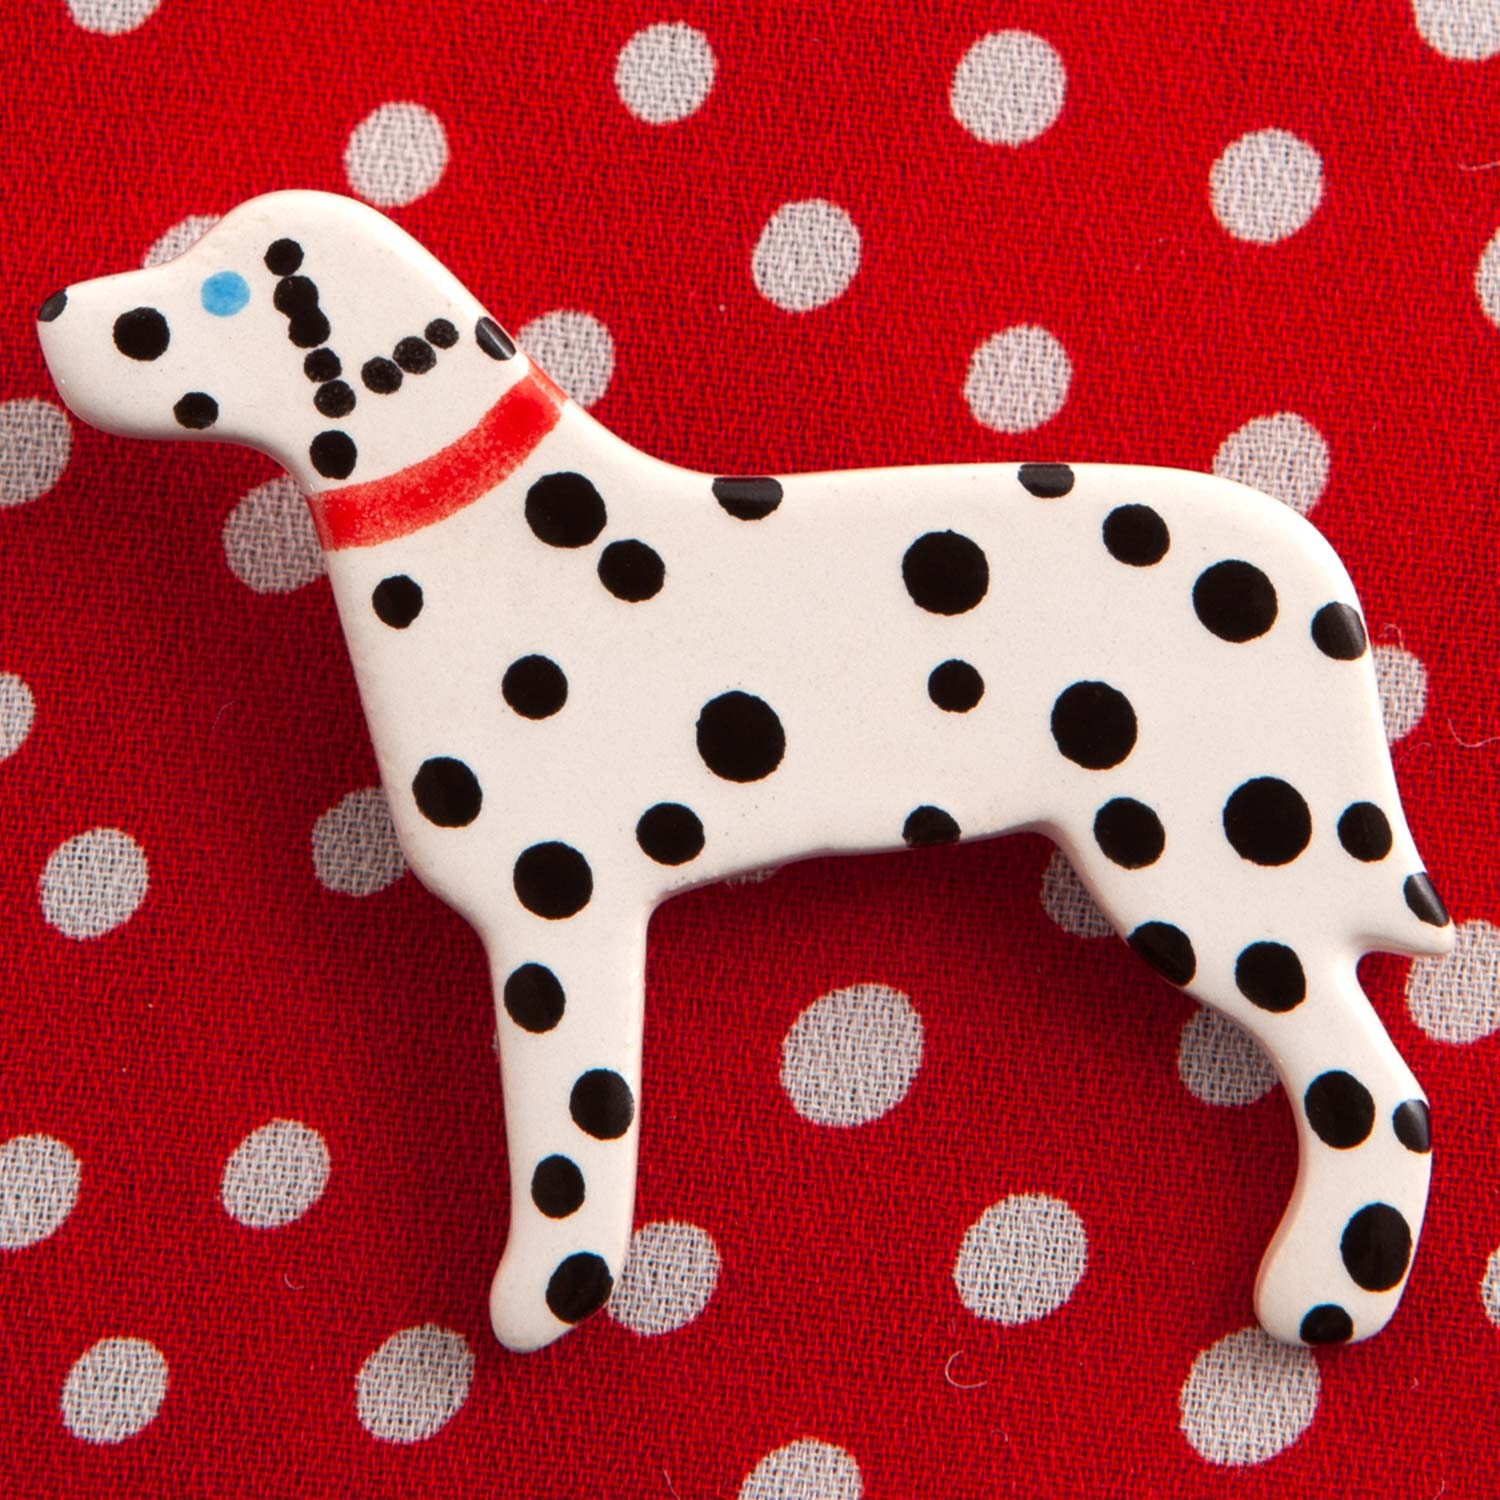 Dog Lover Gifts available at Dog Krazy Gifts – Ceramic Chocolate Labrador Brooch by Mary Goldberg of Stockwell Ceramics, Just Part Of Our Collection Of Dalmatian Themed Gifts, Available At www.dogkrazygifts.co.uk